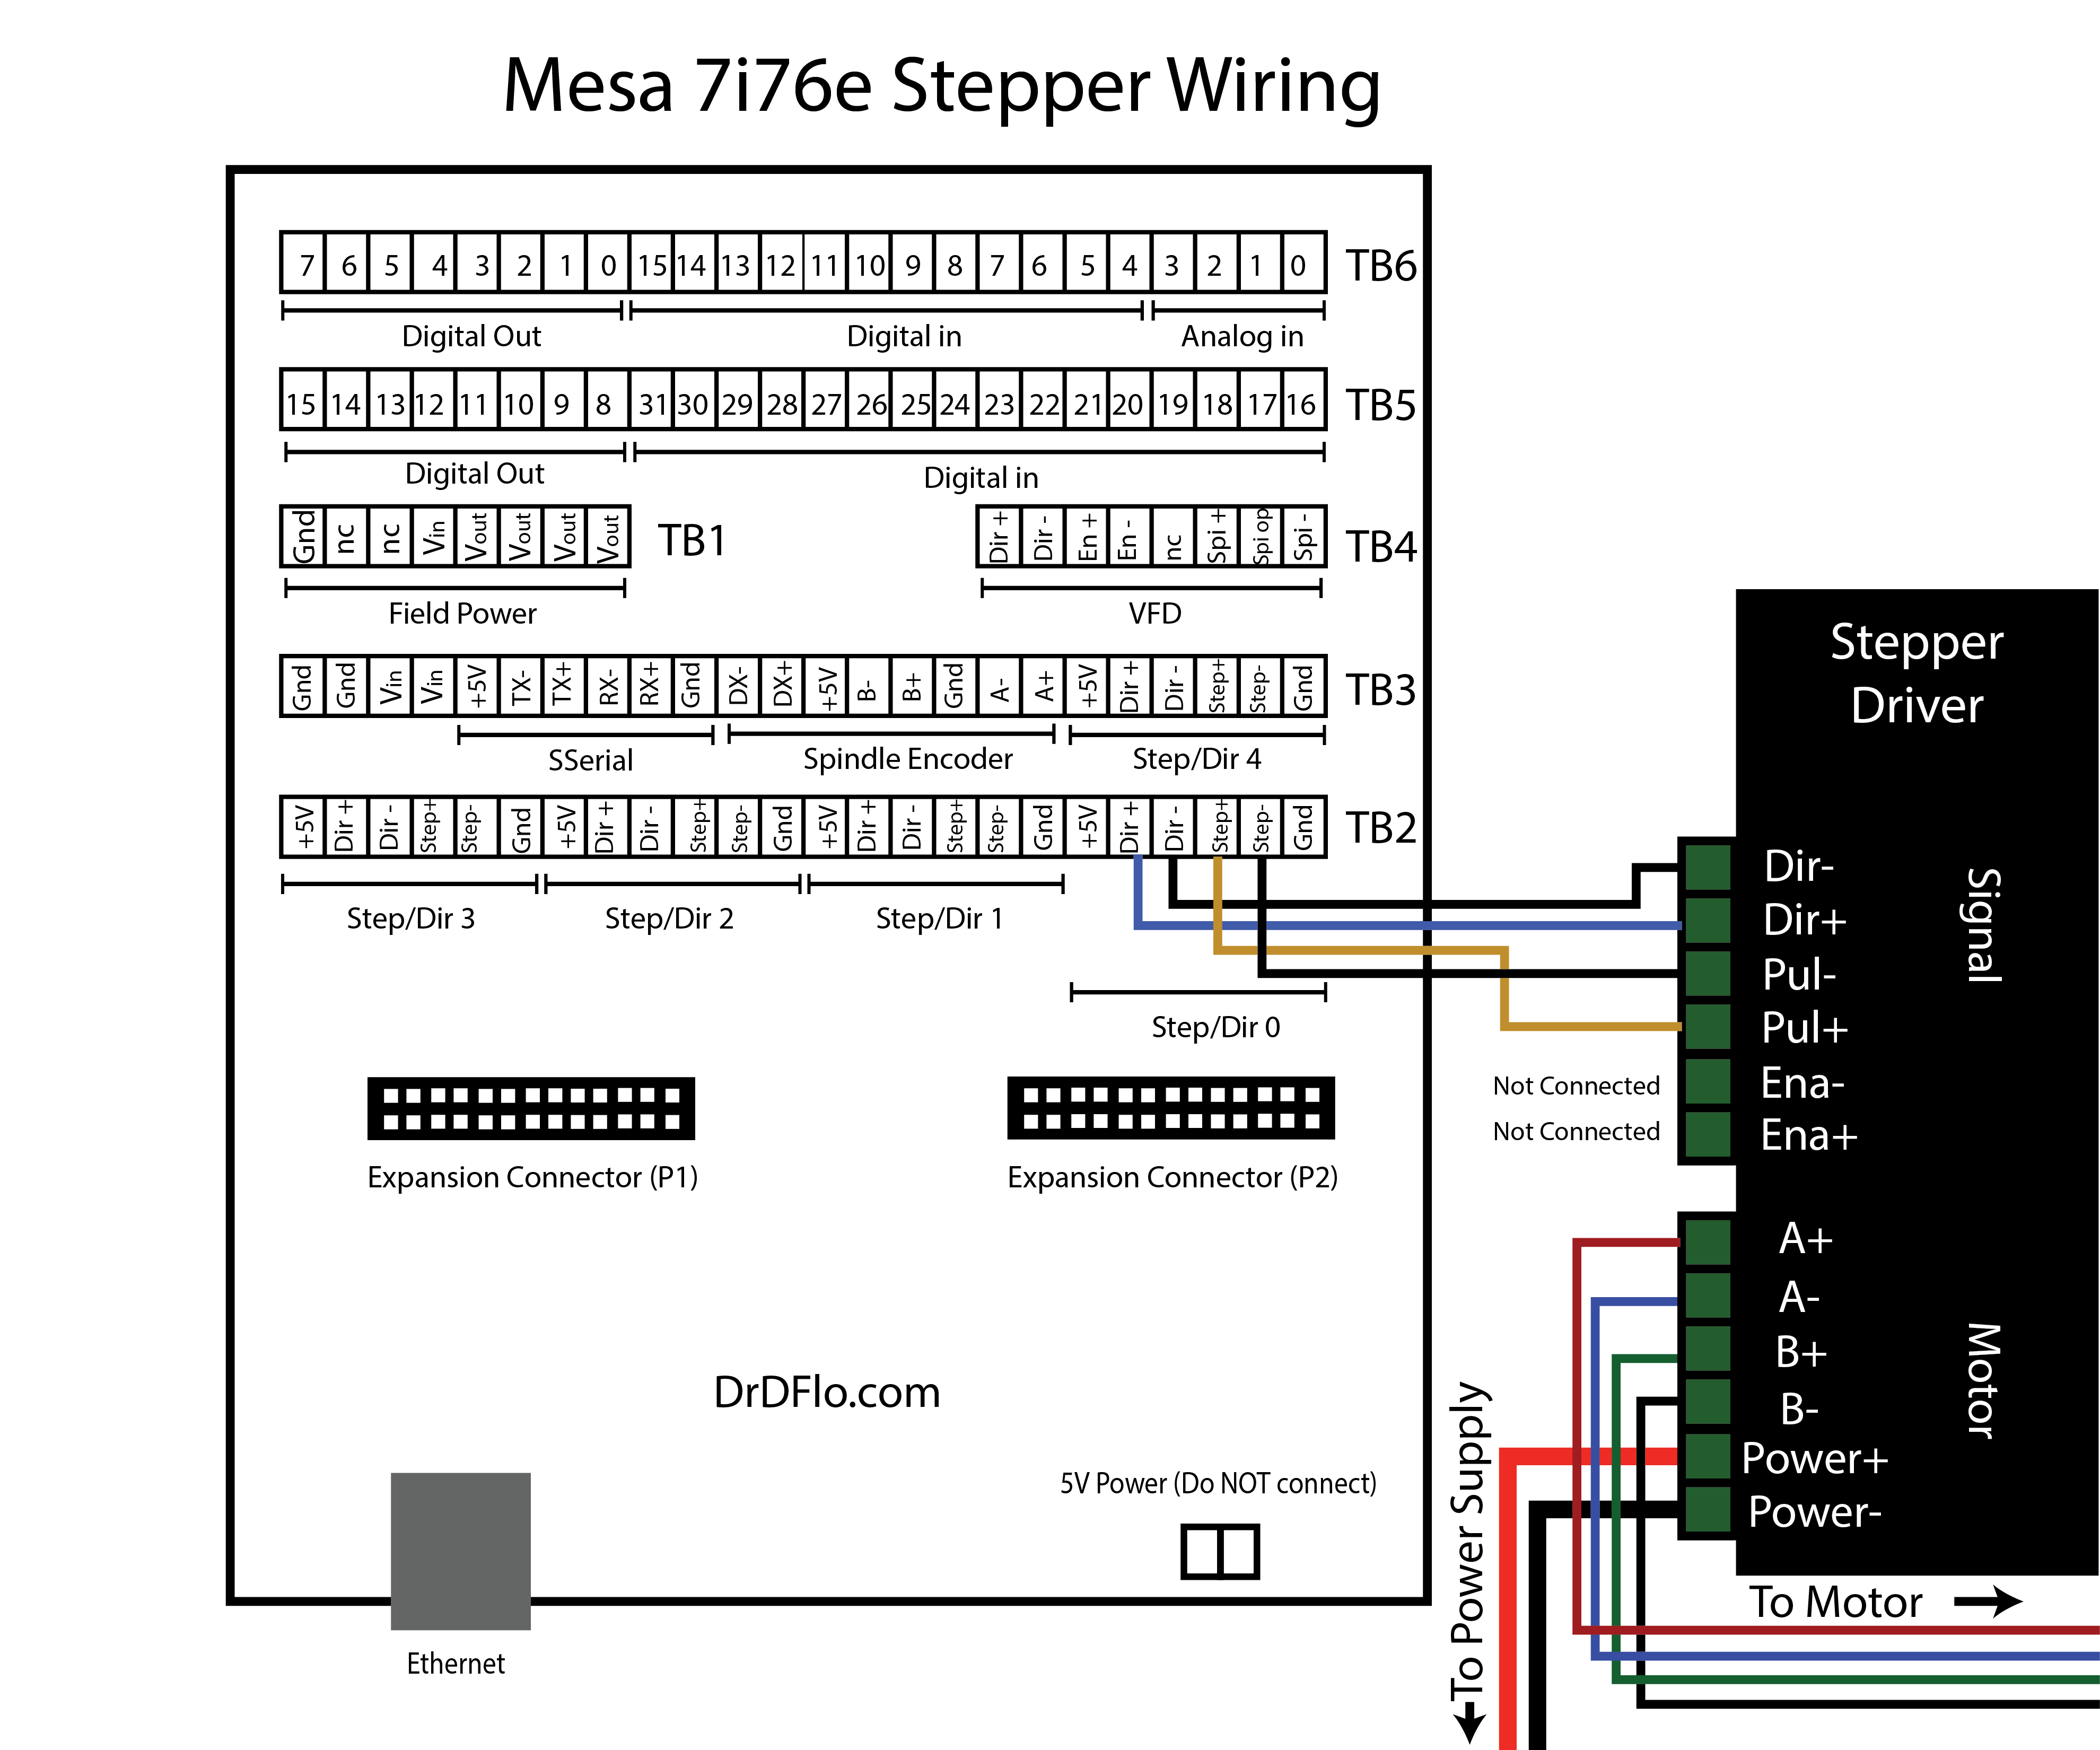 Wiring stepper drivers to the Mesa 7i76e